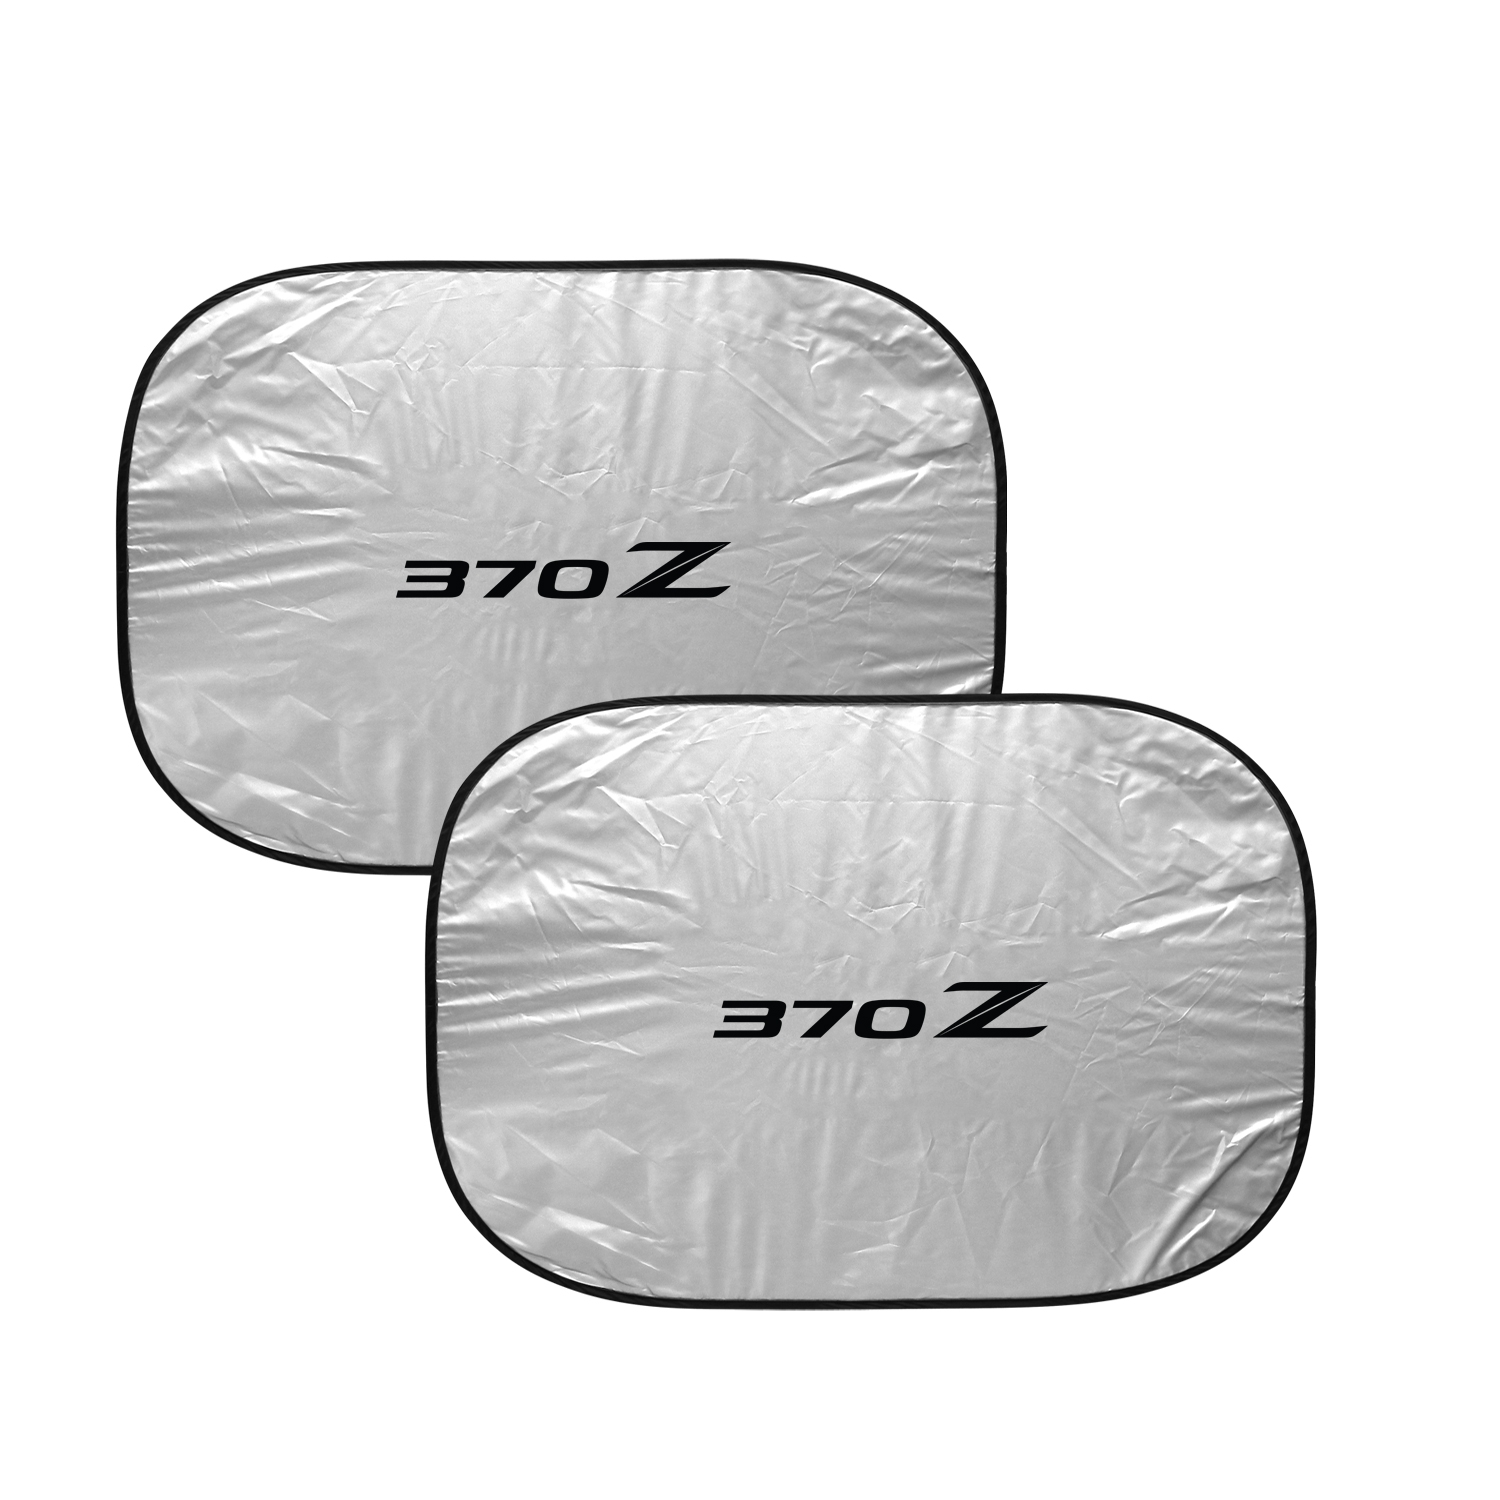 Nissan 370Z Dual Panels Easy Folding Windshield Sun Shade for Cars and Small SUVs